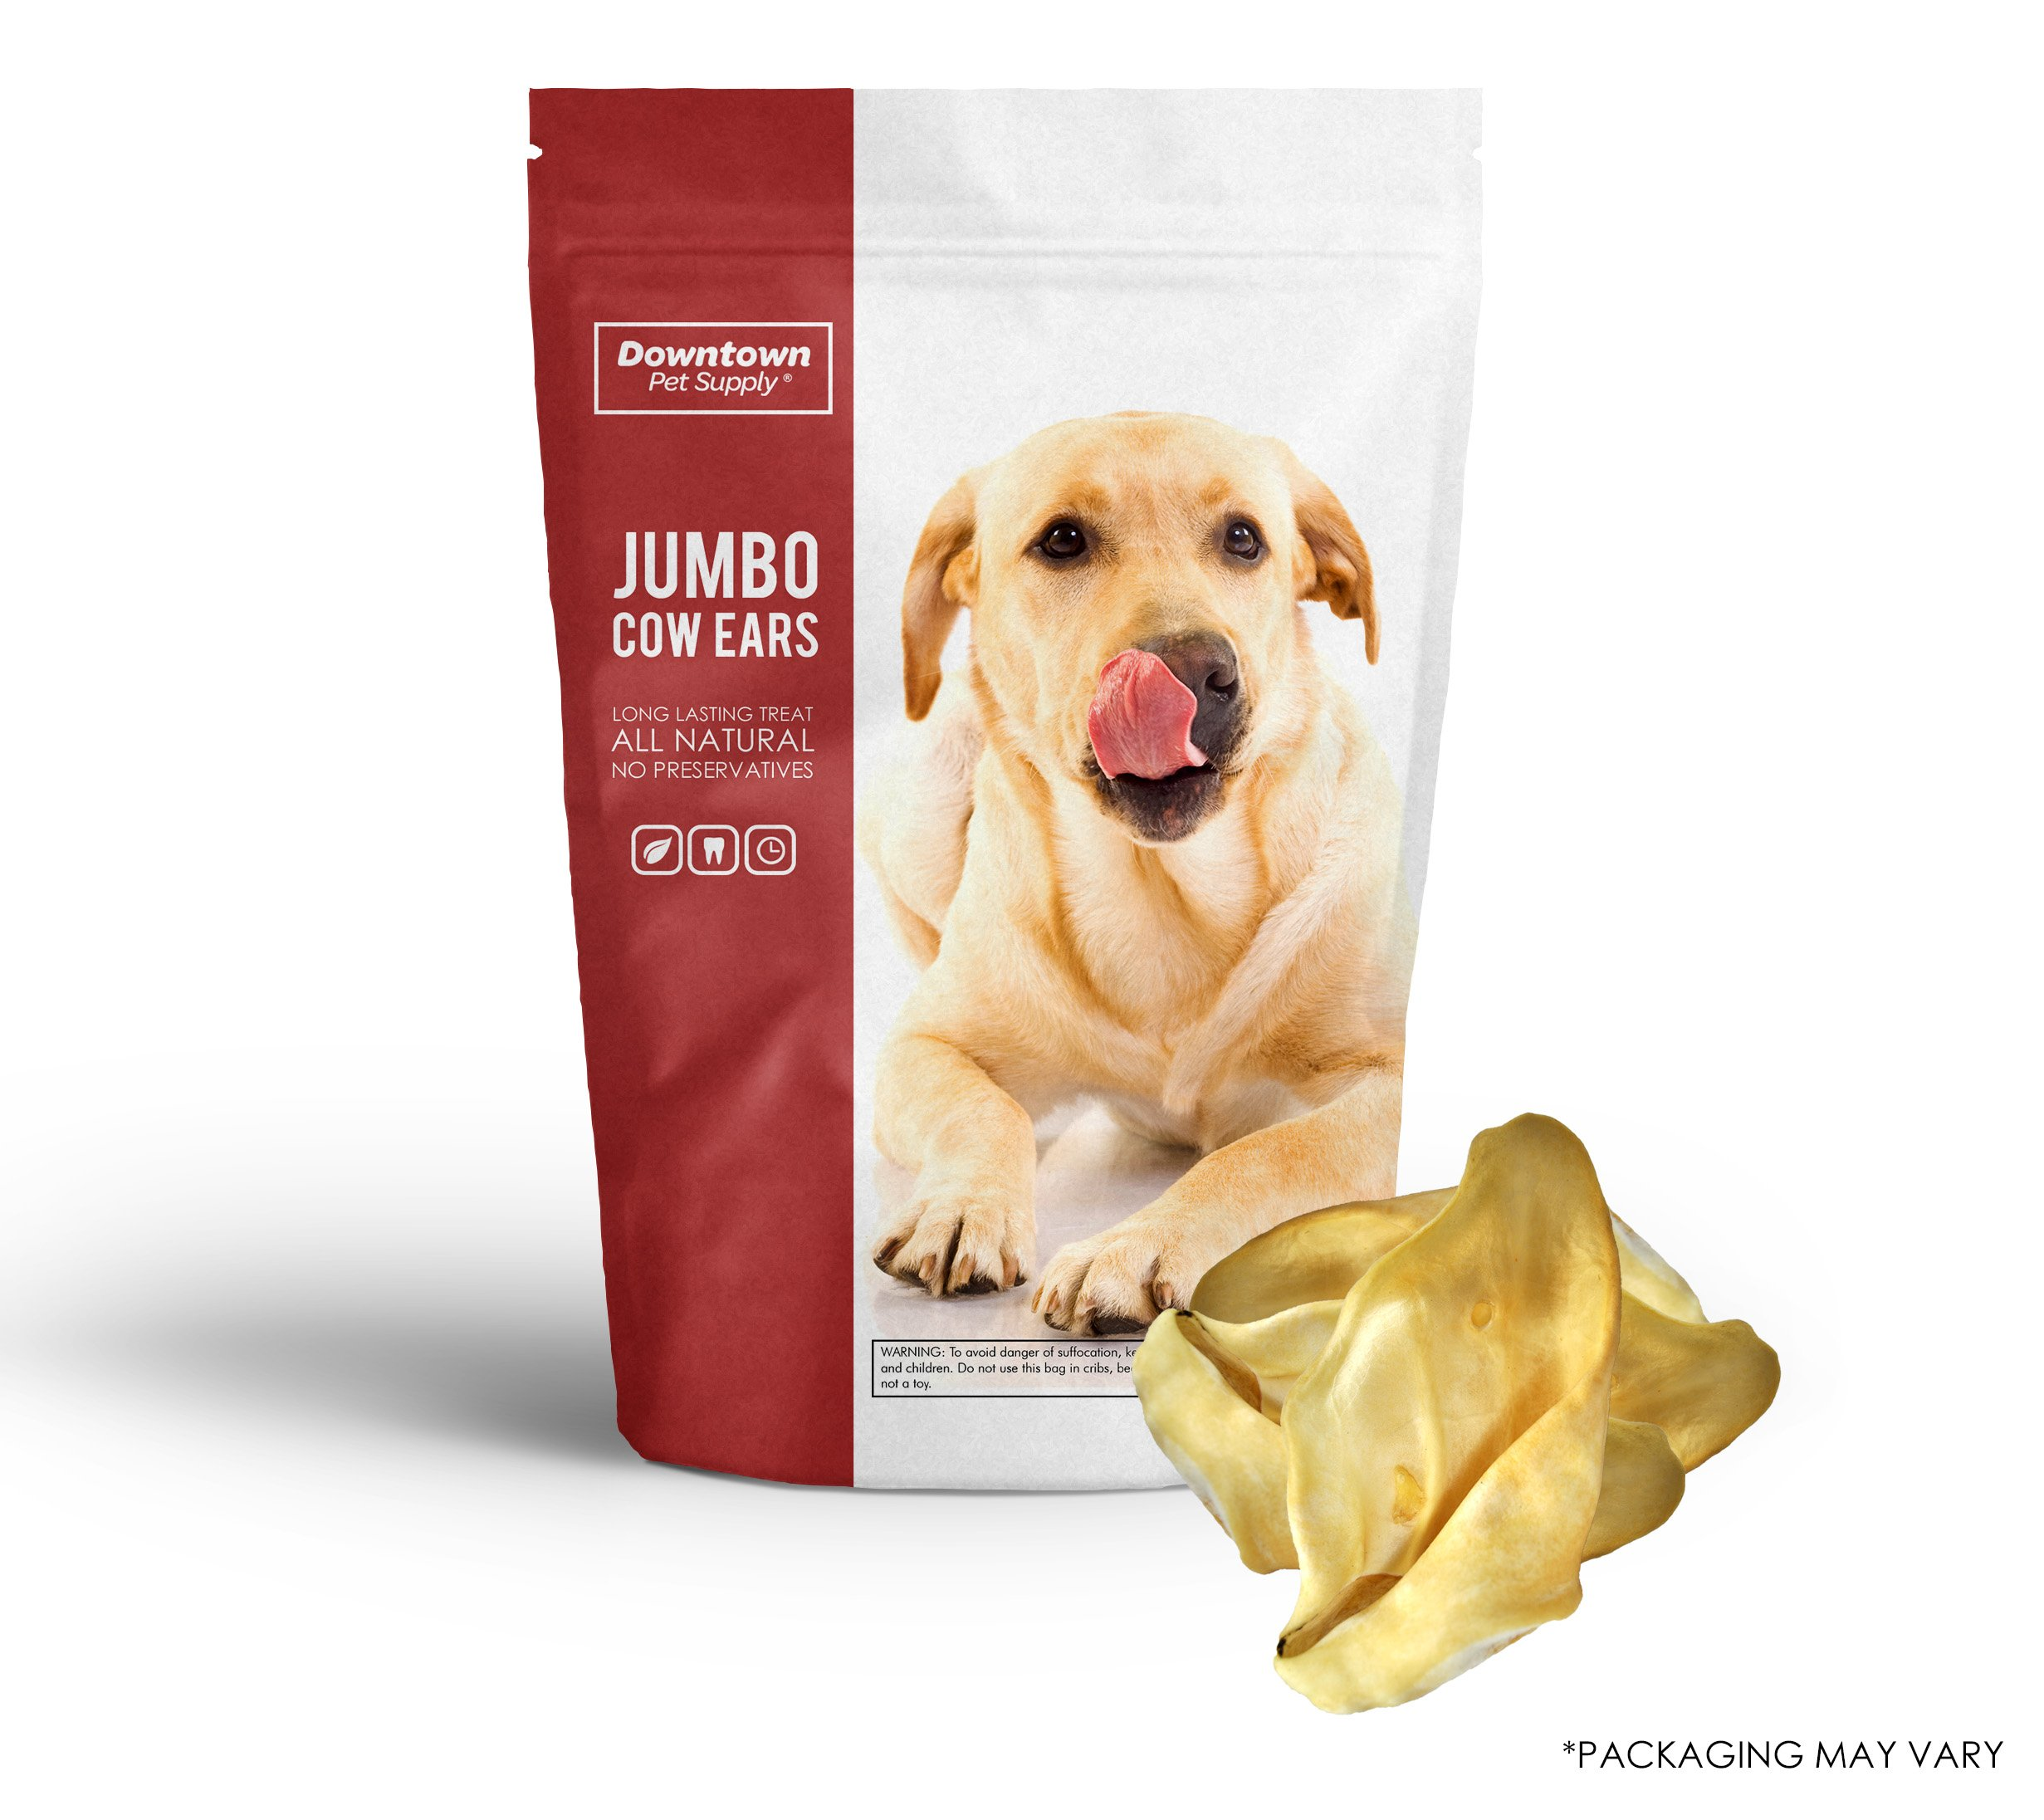 Downtown Pet Supply All Natural Jumbo Cow Ears for Dogs, Healthy Dog Treats Dental and Training Chews - Available in Bulk (25 Pack)